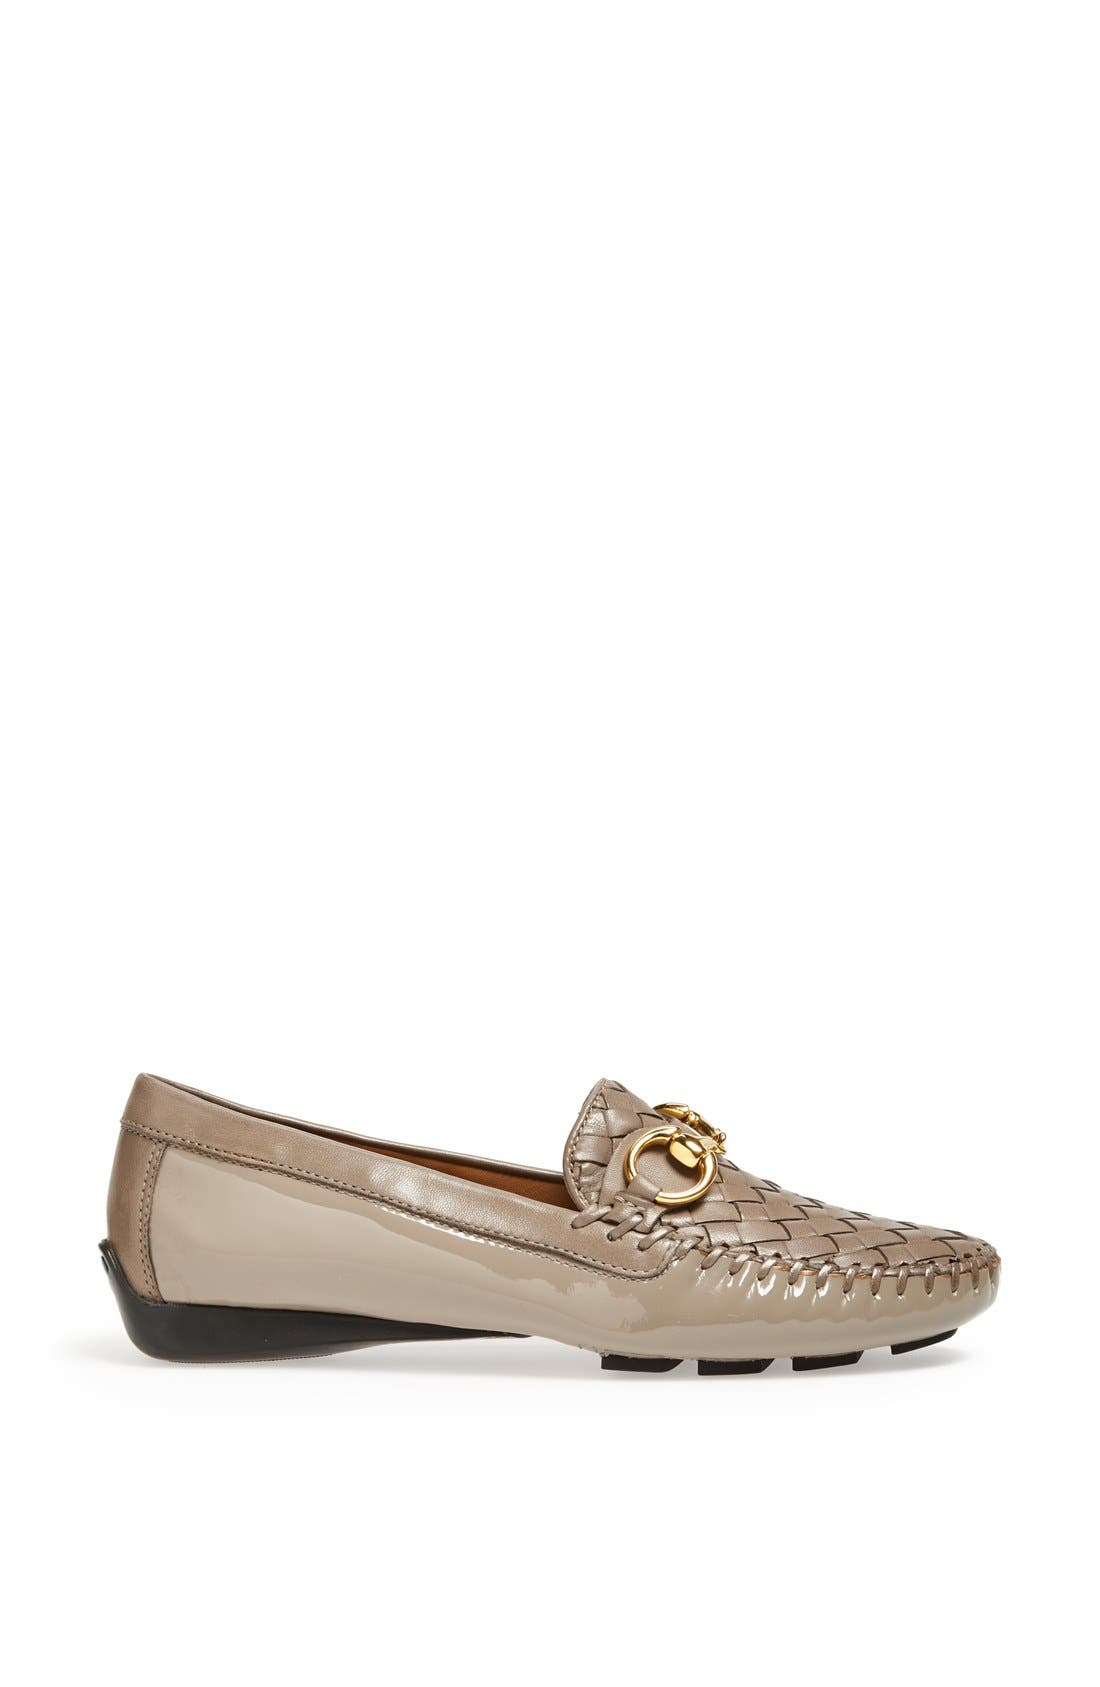 'Perlata' Loafer,                             Alternate thumbnail 4, color,                             Taupe Patent